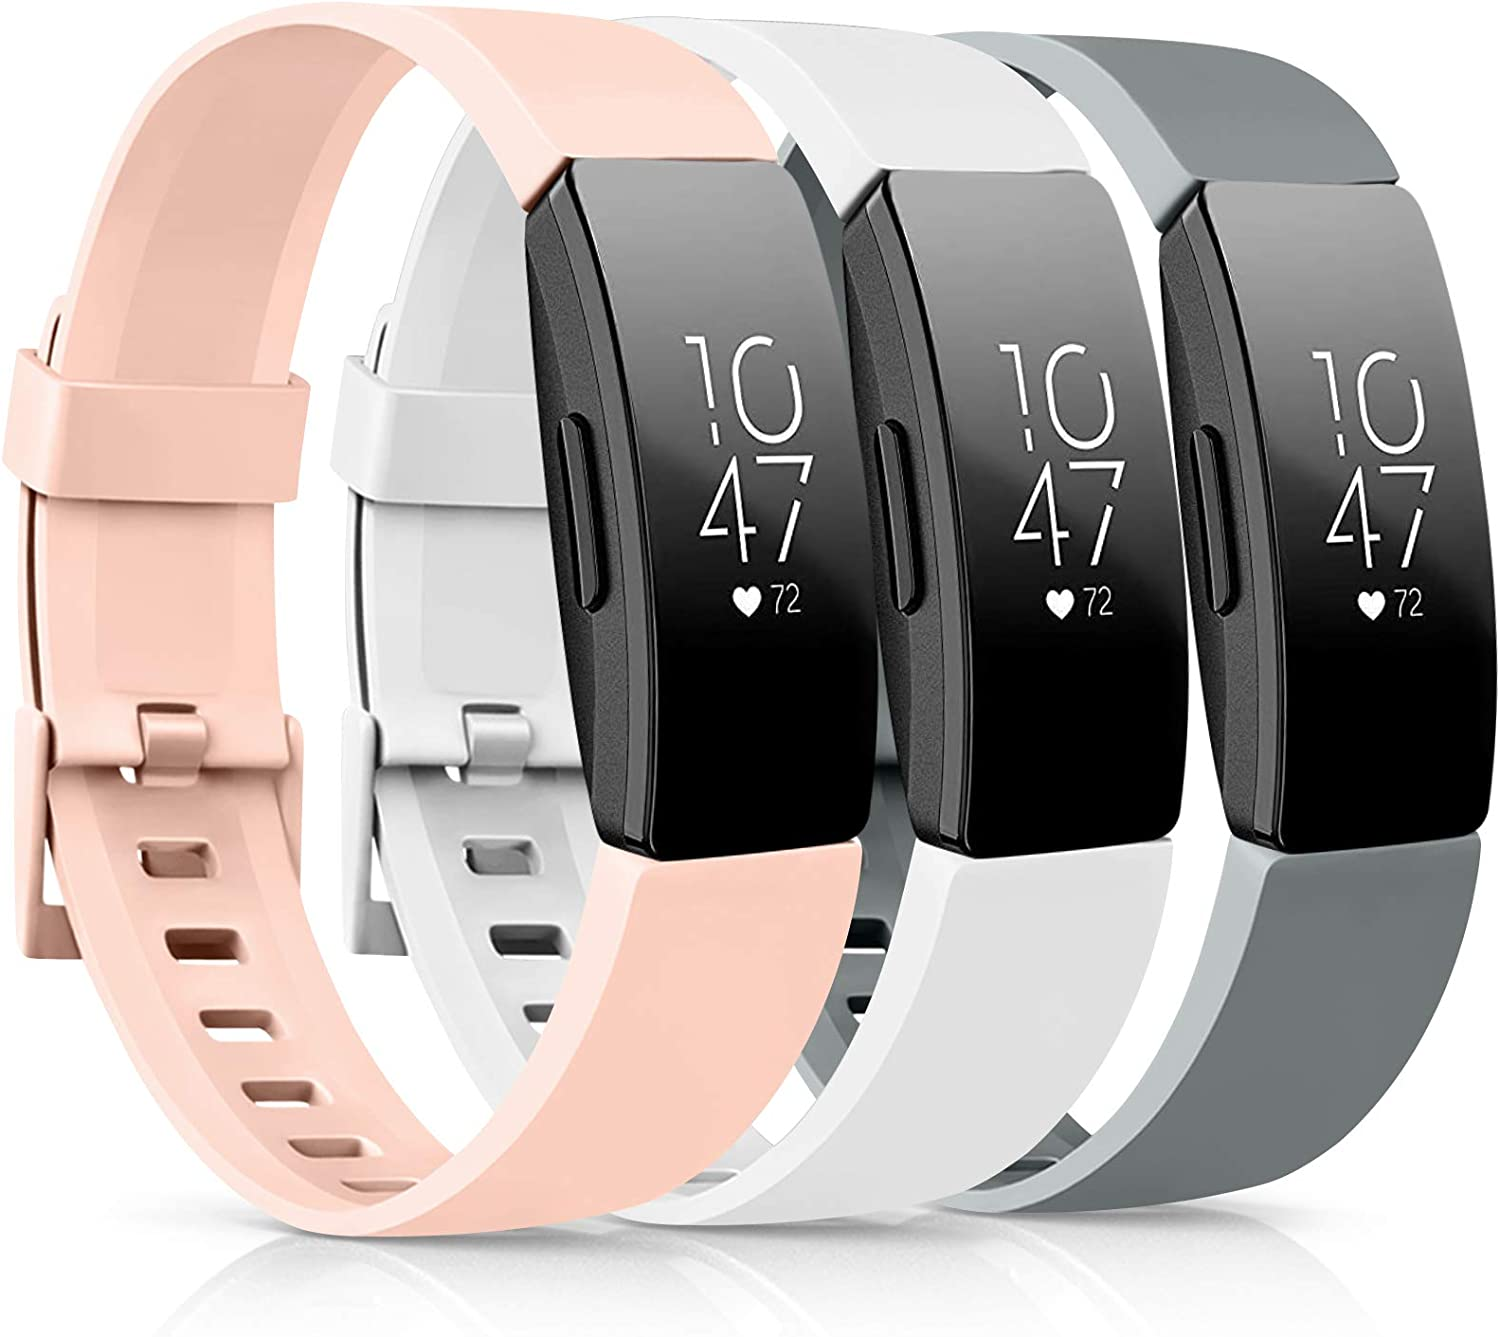 [3 Pack] Soft TPU Bands Compatible with Fitbit Inspire 2 / Fitbit Inspire HR/Fitbit Inspire/Fitbit Ace 2 Wristbands Sports Waterproof Straps for Fitbit Inspire HR (02 Gray/Pink/White, Small)